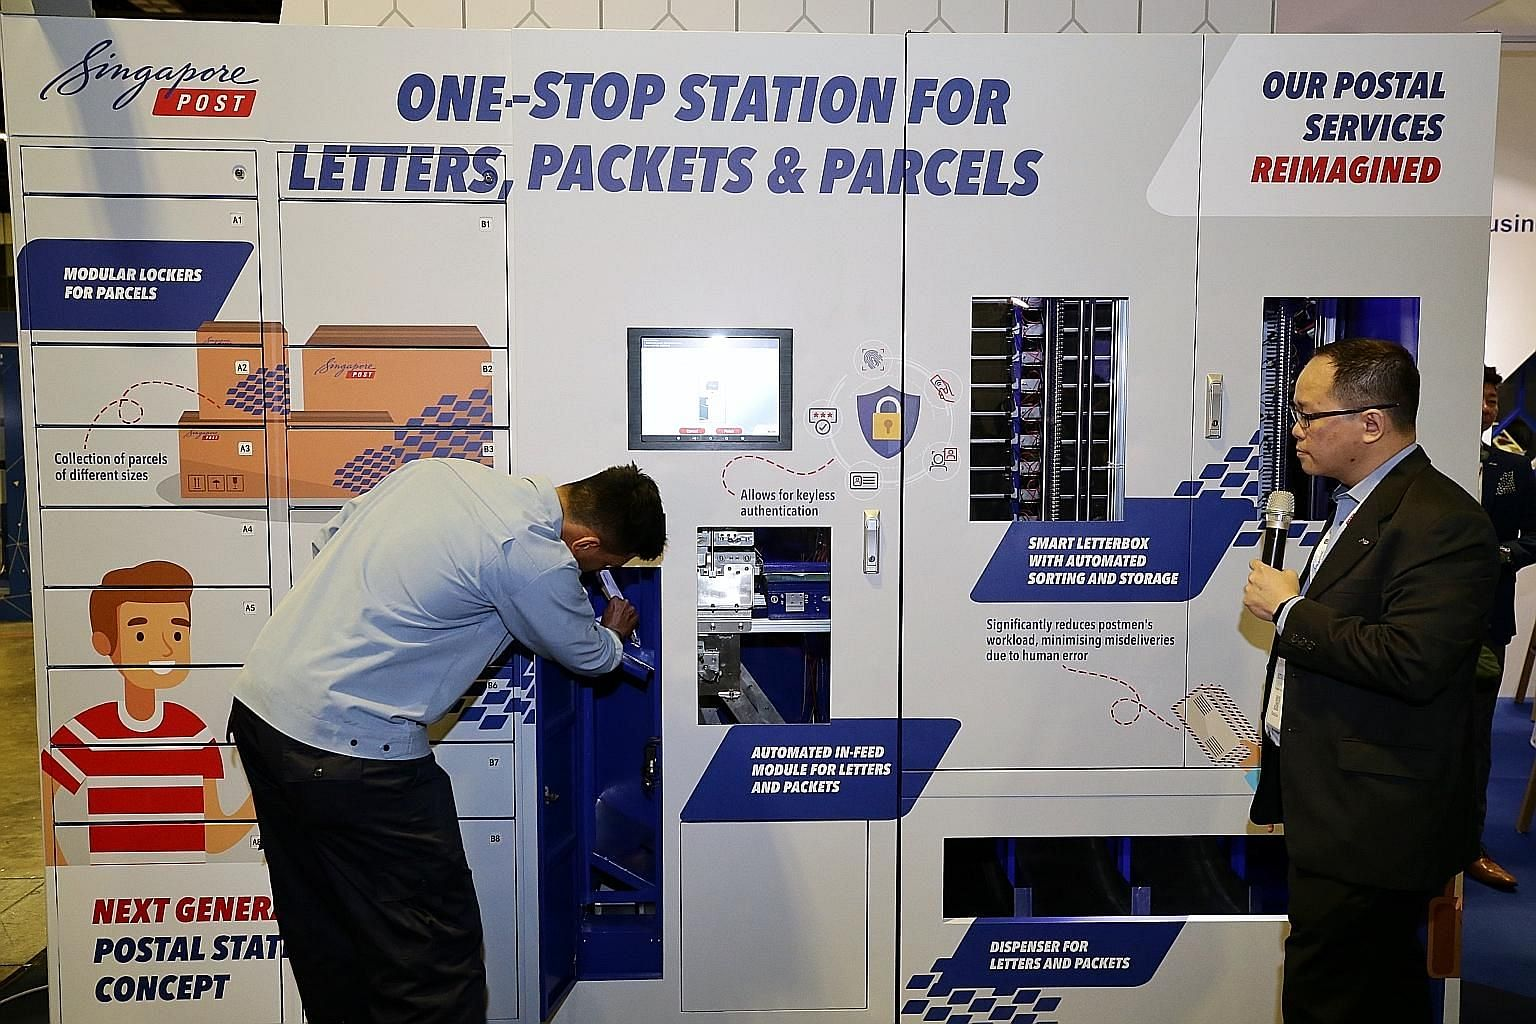 A postman putting mail into the central deposit of SingPost's smart letterbox prototype, with Mr Edmund Tan, SingPost's vice-president of innovation for postal services, explaining how the machine scans data matrix codes and then sorts mail into stor